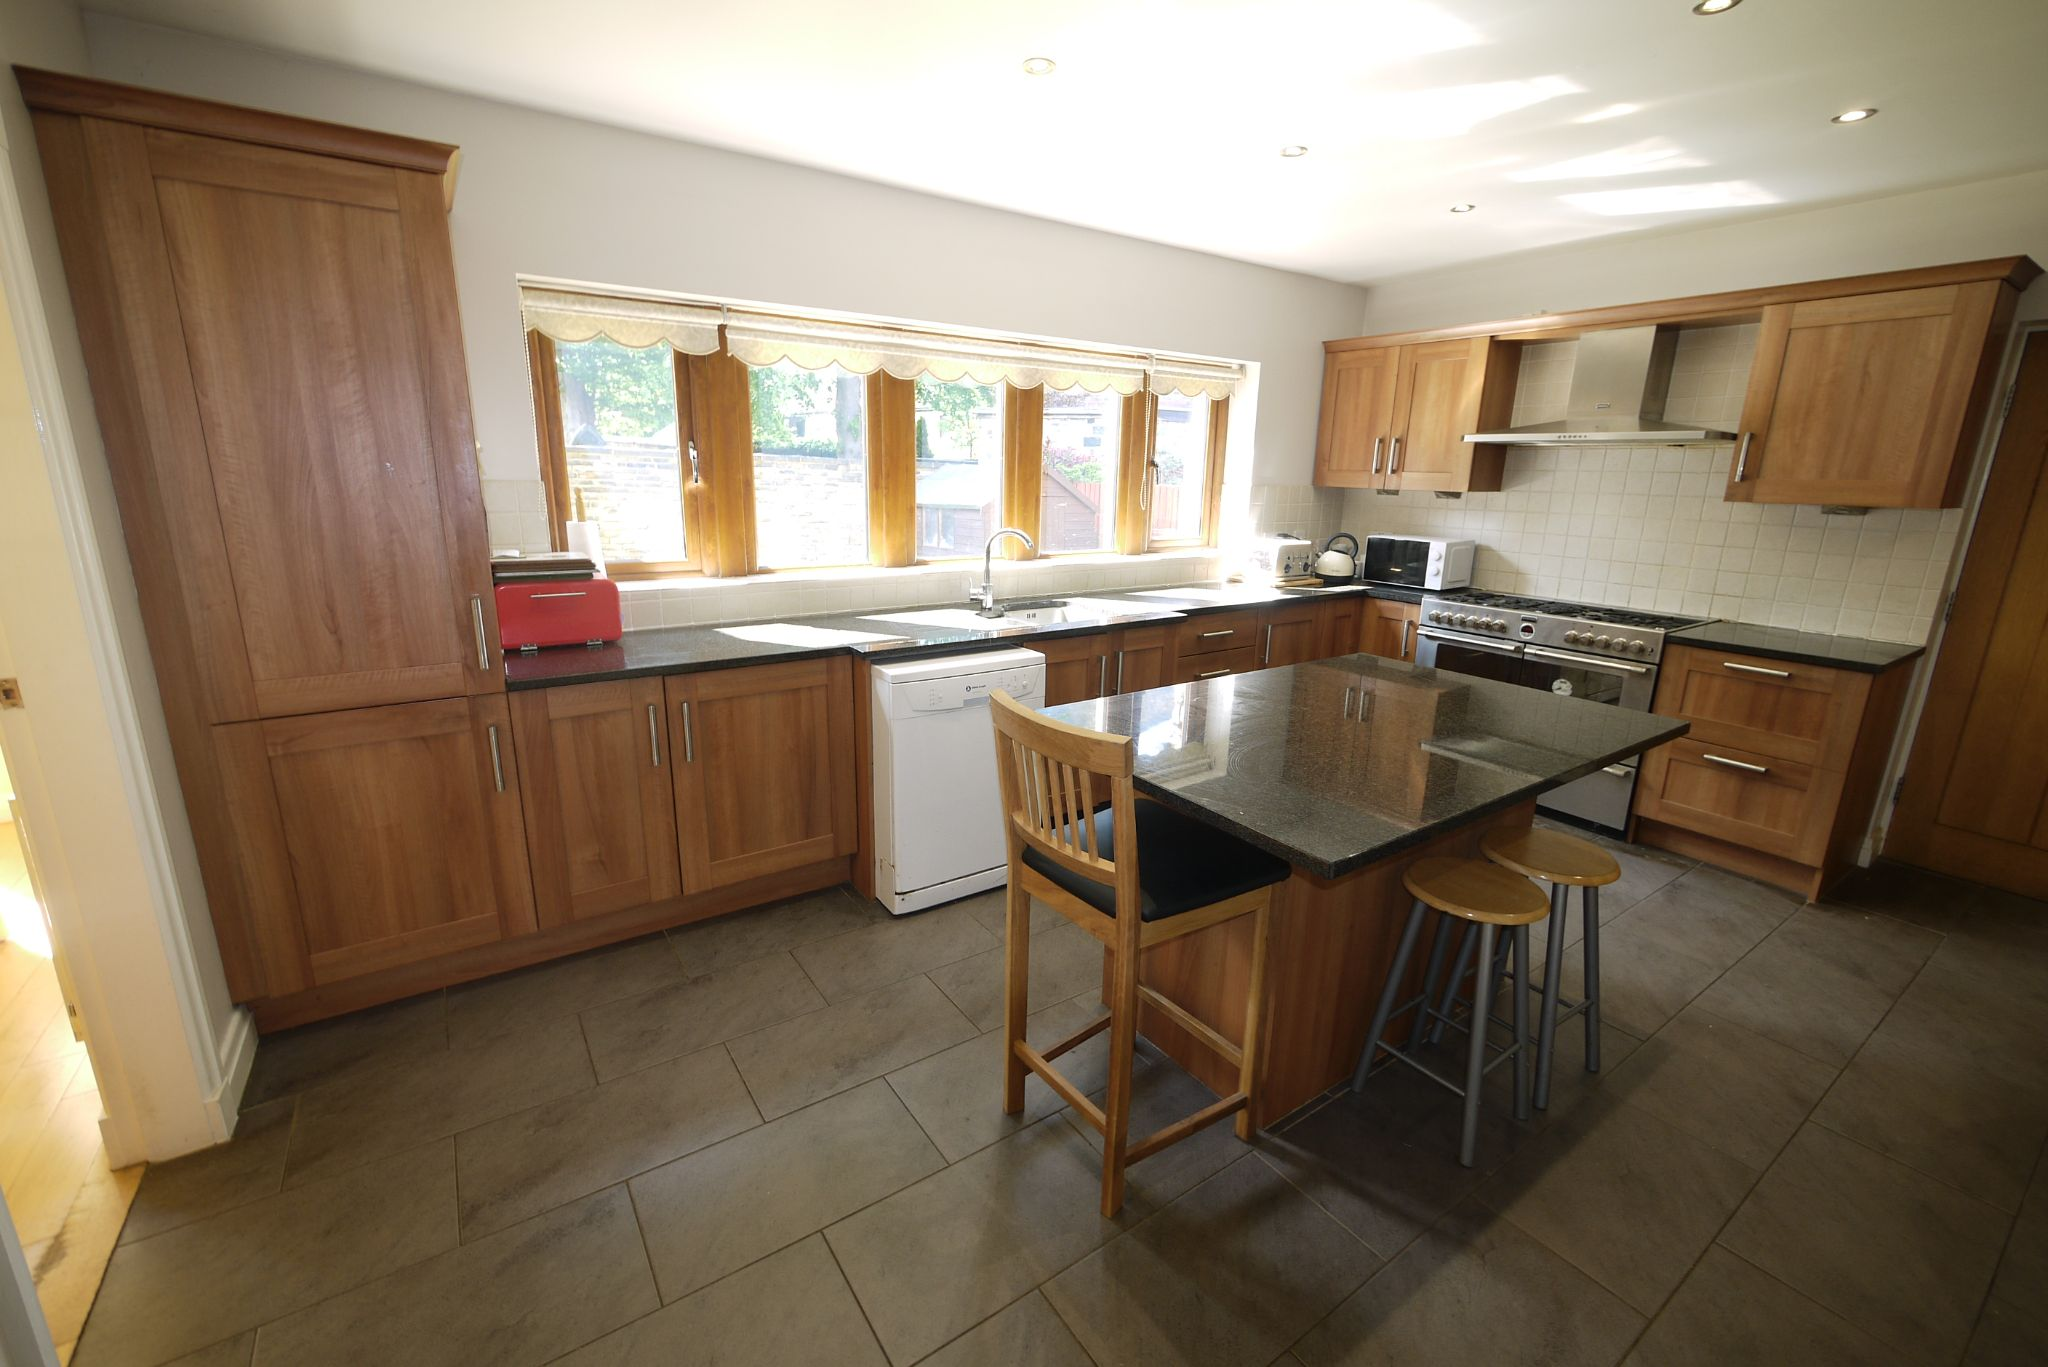 5 bedroom detached house For Sale in Brighouse - Photograph 3.